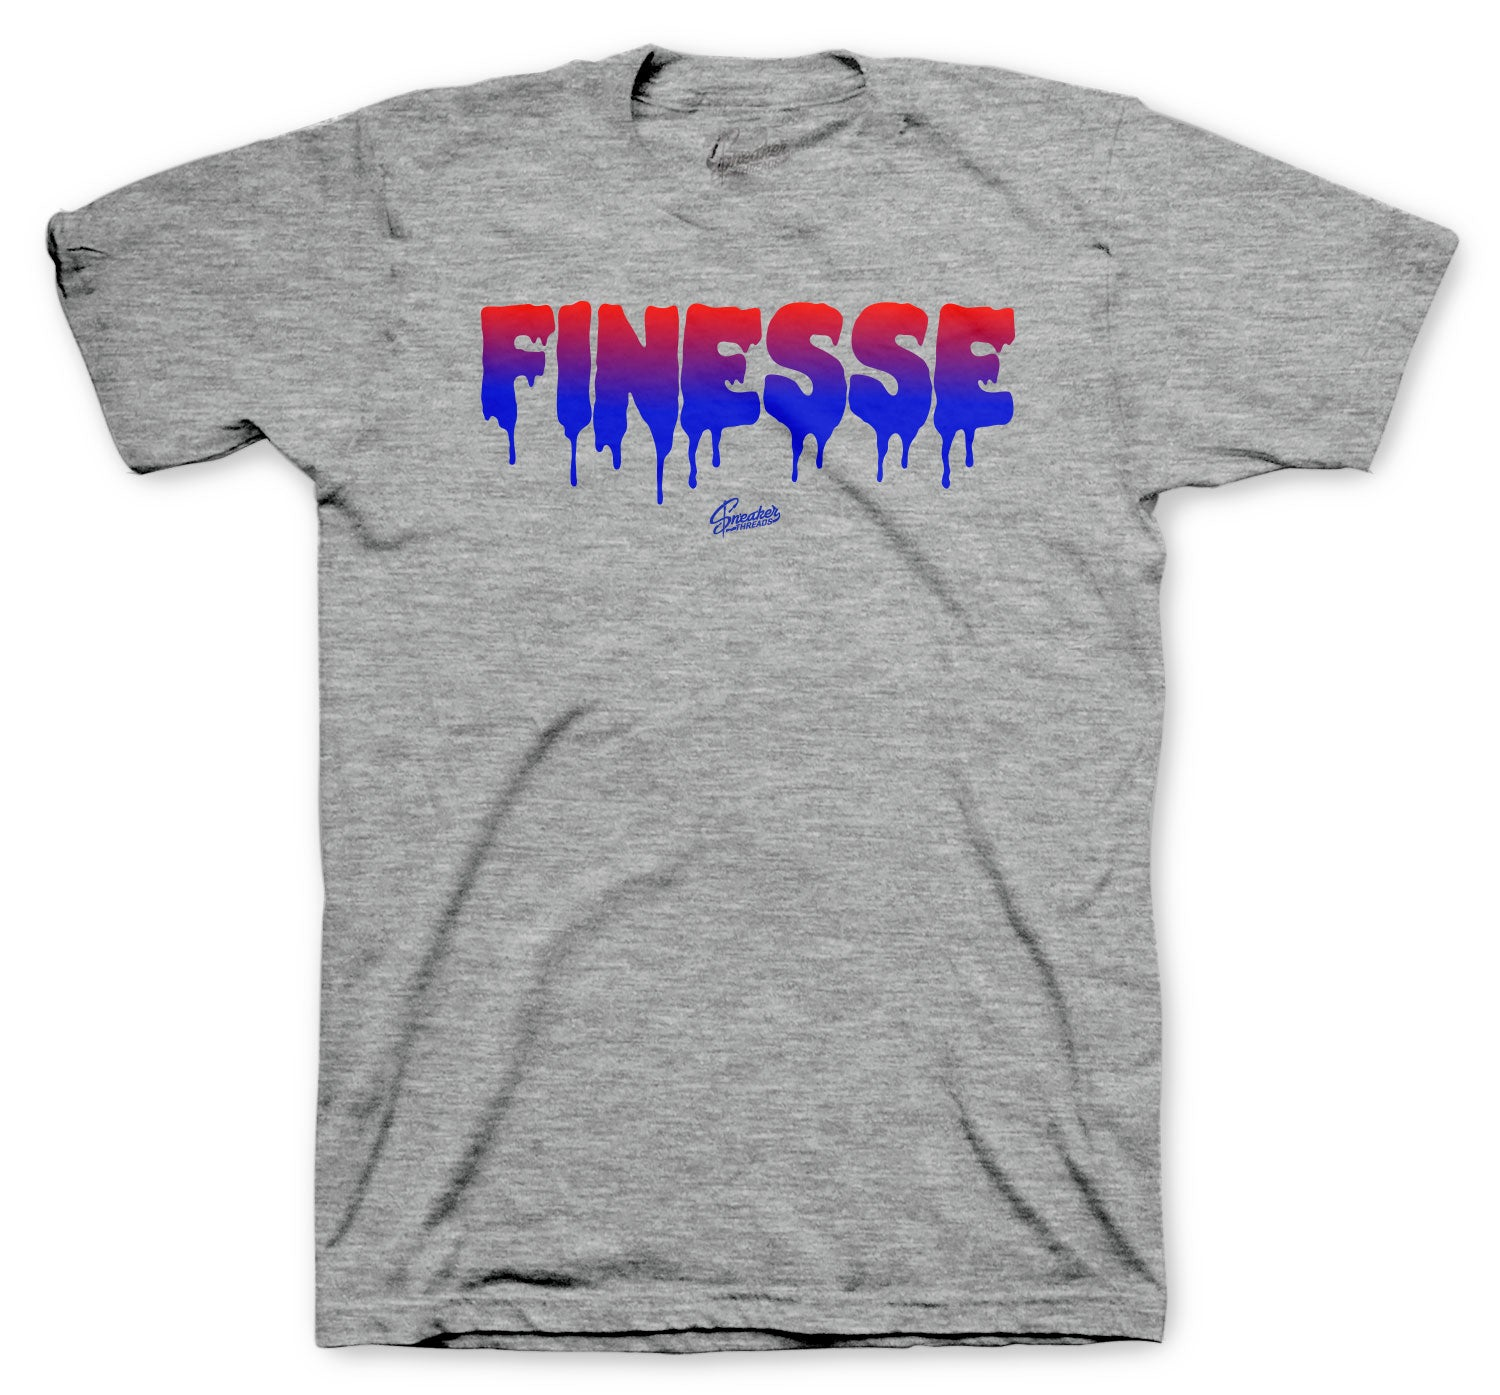 All Star 2020 Tune Squad Shirt  - Finesse - Heather Grey